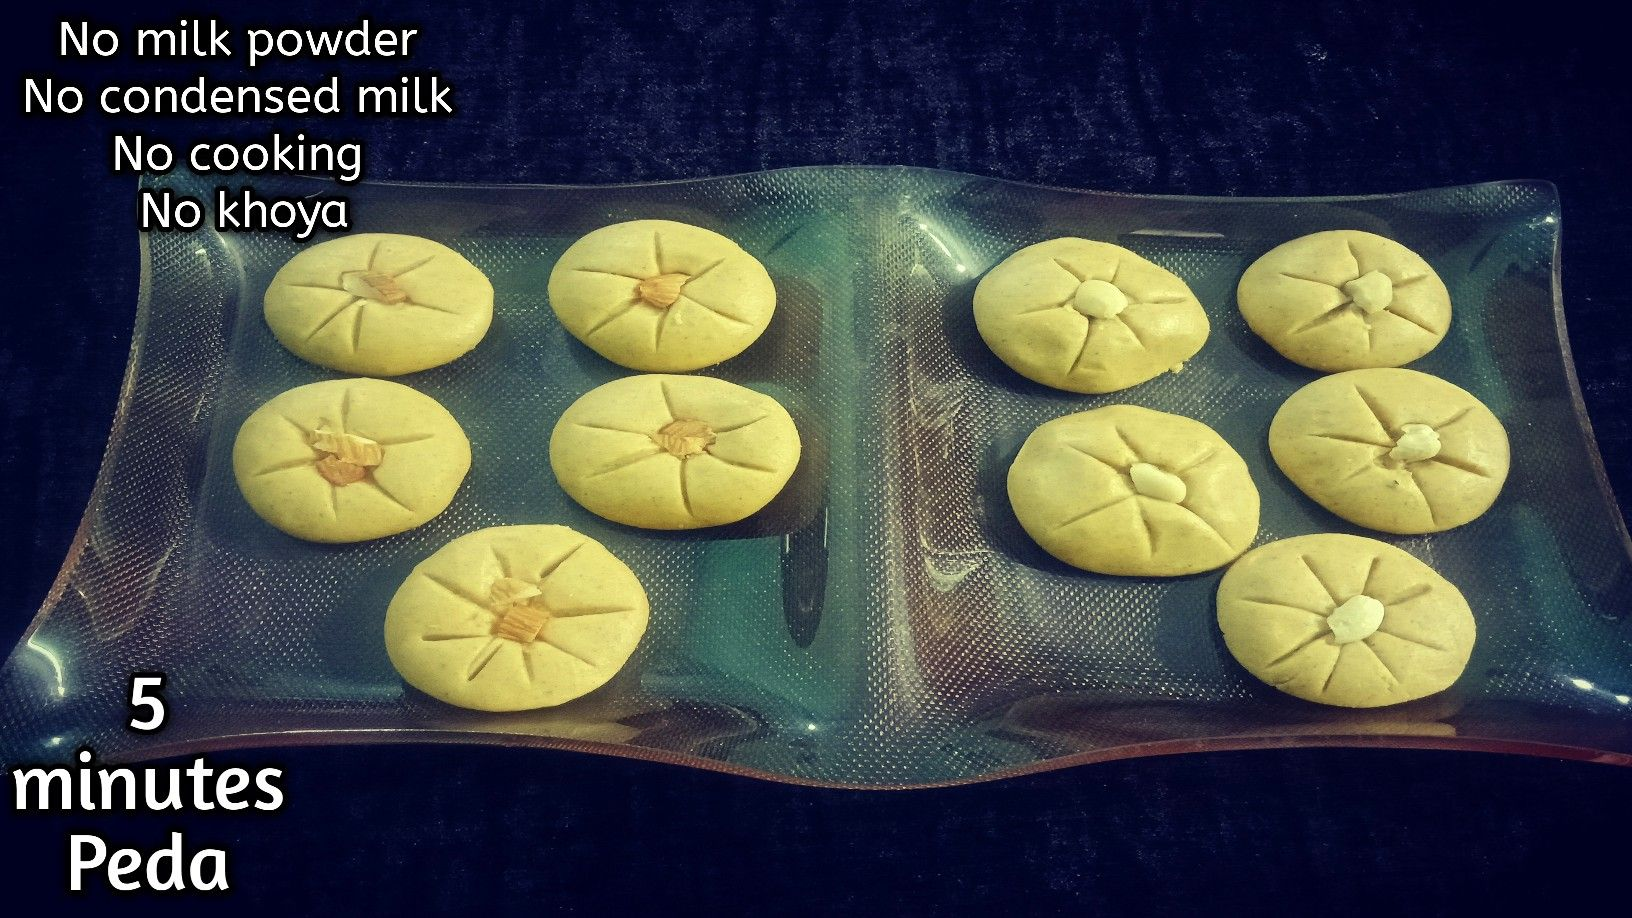 Instant Peda Recipe No Cook 5 Minutes Peda No Milk Powder No Condensed Milk No Cooking Peda In 2020 Peda Recipe Peda Powdered Milk